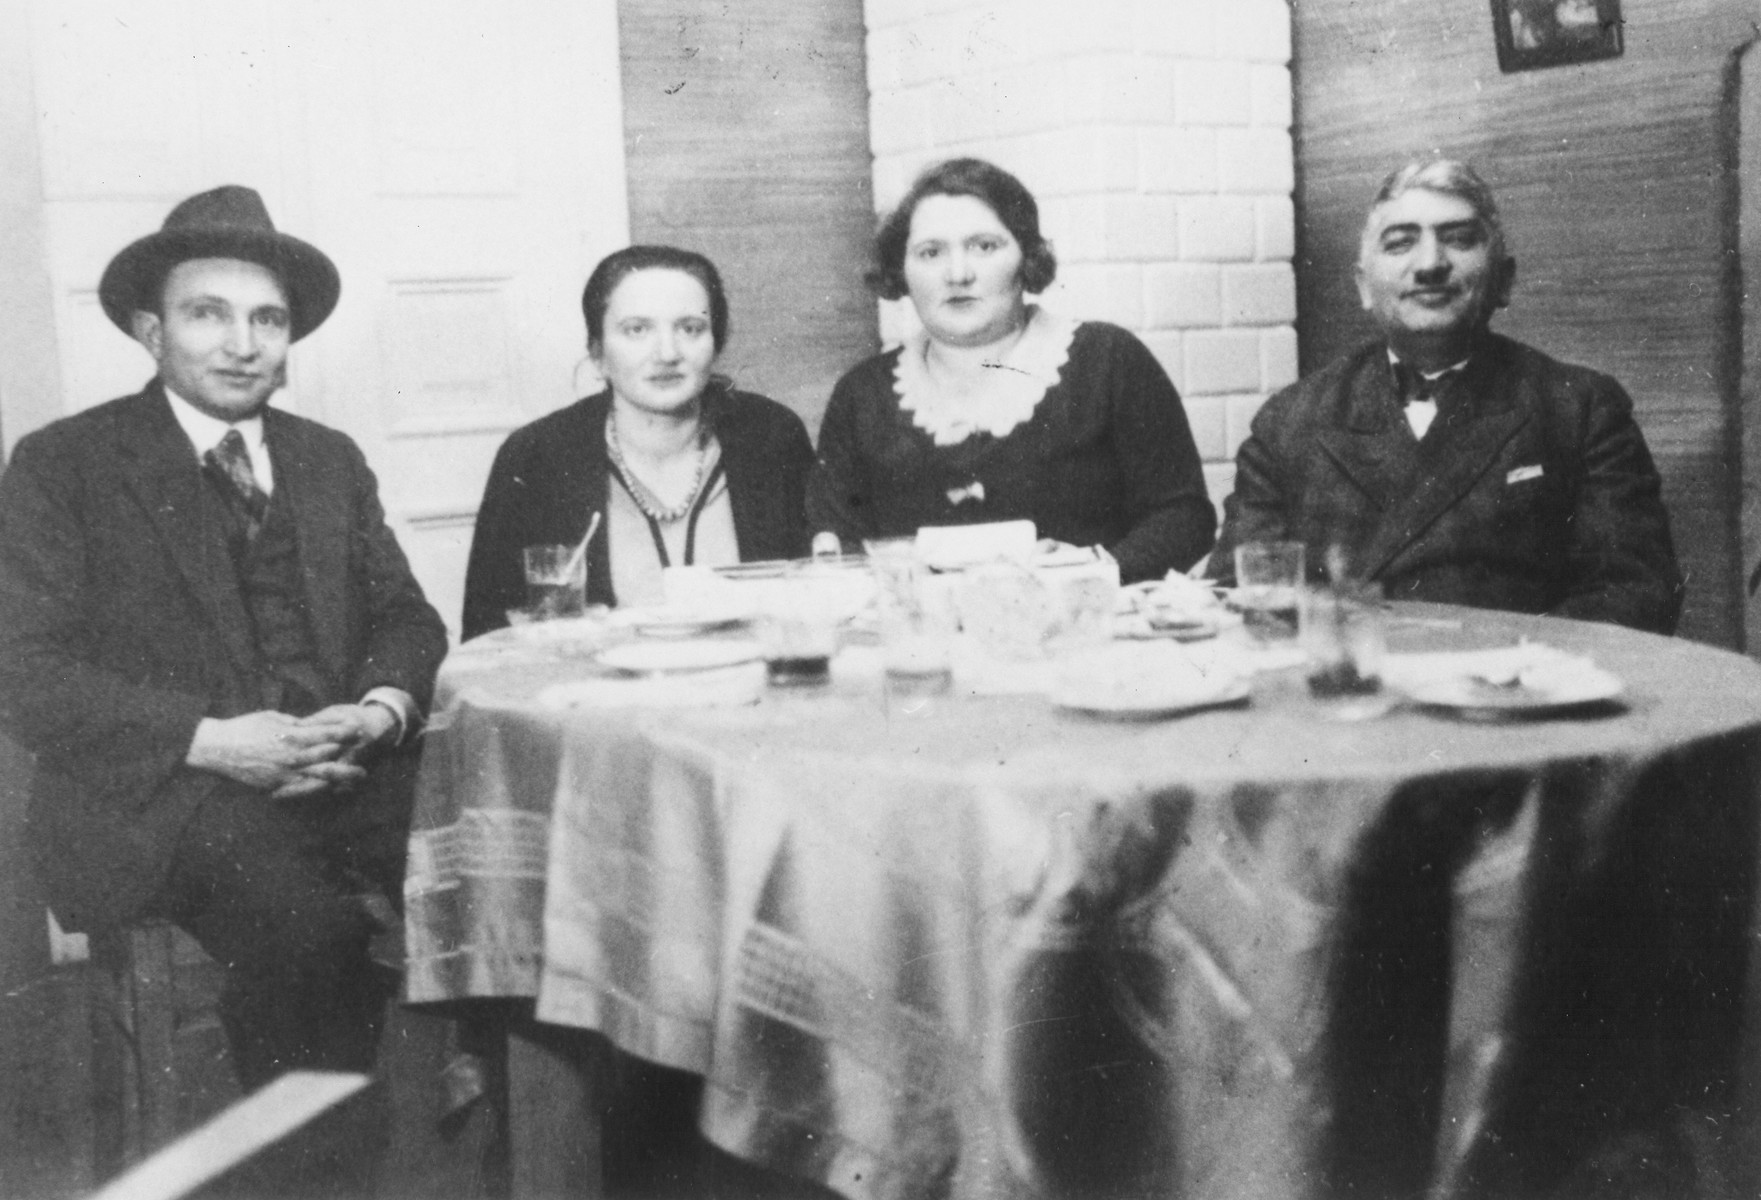 Prewar portrait of a Jewish family sitting at a table.  Pictured are the family of Henry Tovey (originally Choroszcz).  From left to right are Natan Malczer (his uncle), Masia Majerczyk (his aunt), Rozia Choroszcz (his mother) and Nechemia Choroszcz (his father).